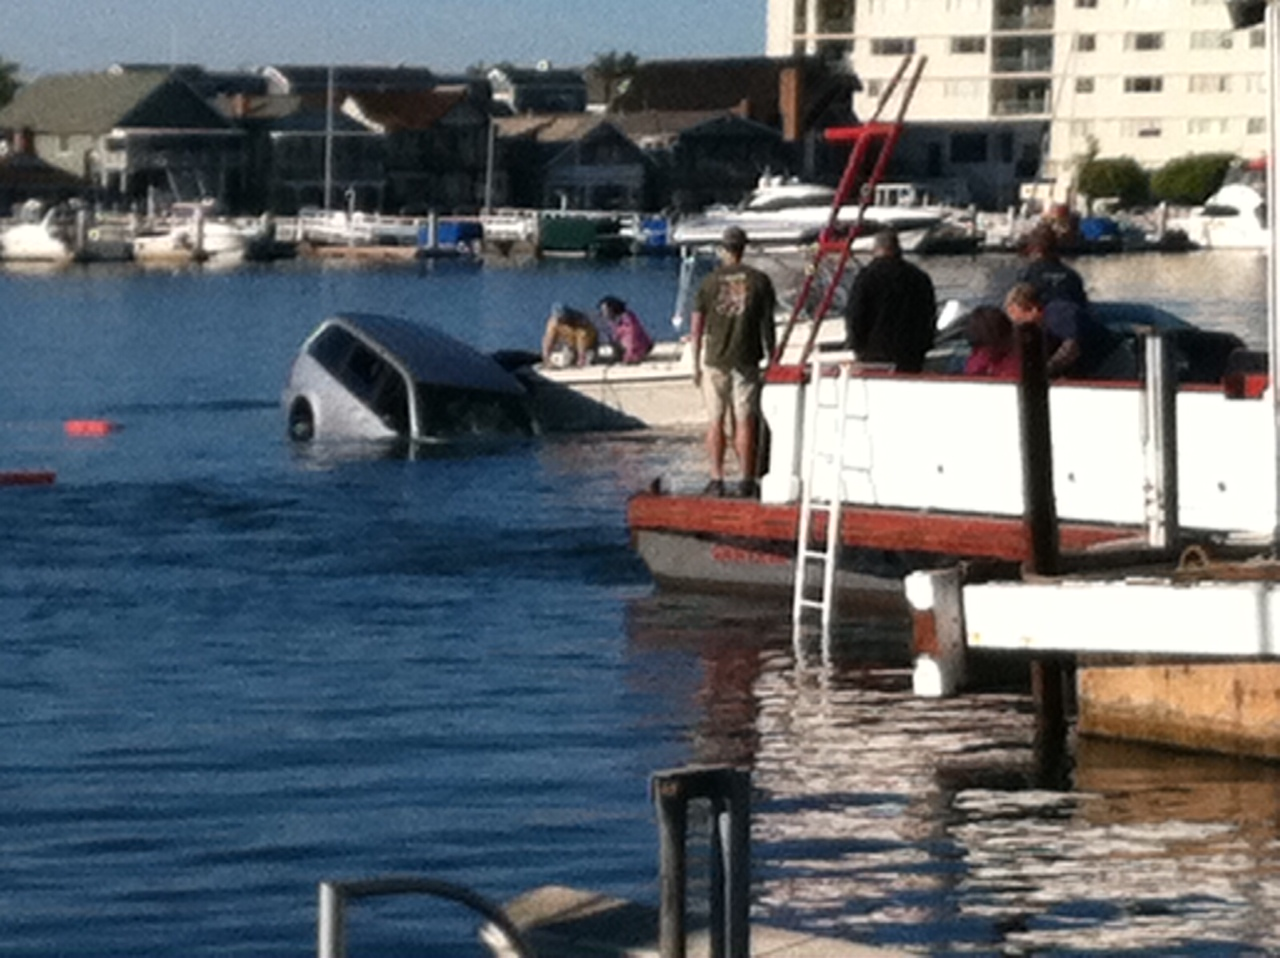 The Minivan Sinking After Family Escaped Photo By Lori Williams Courtesy Newport Beach Fire Department